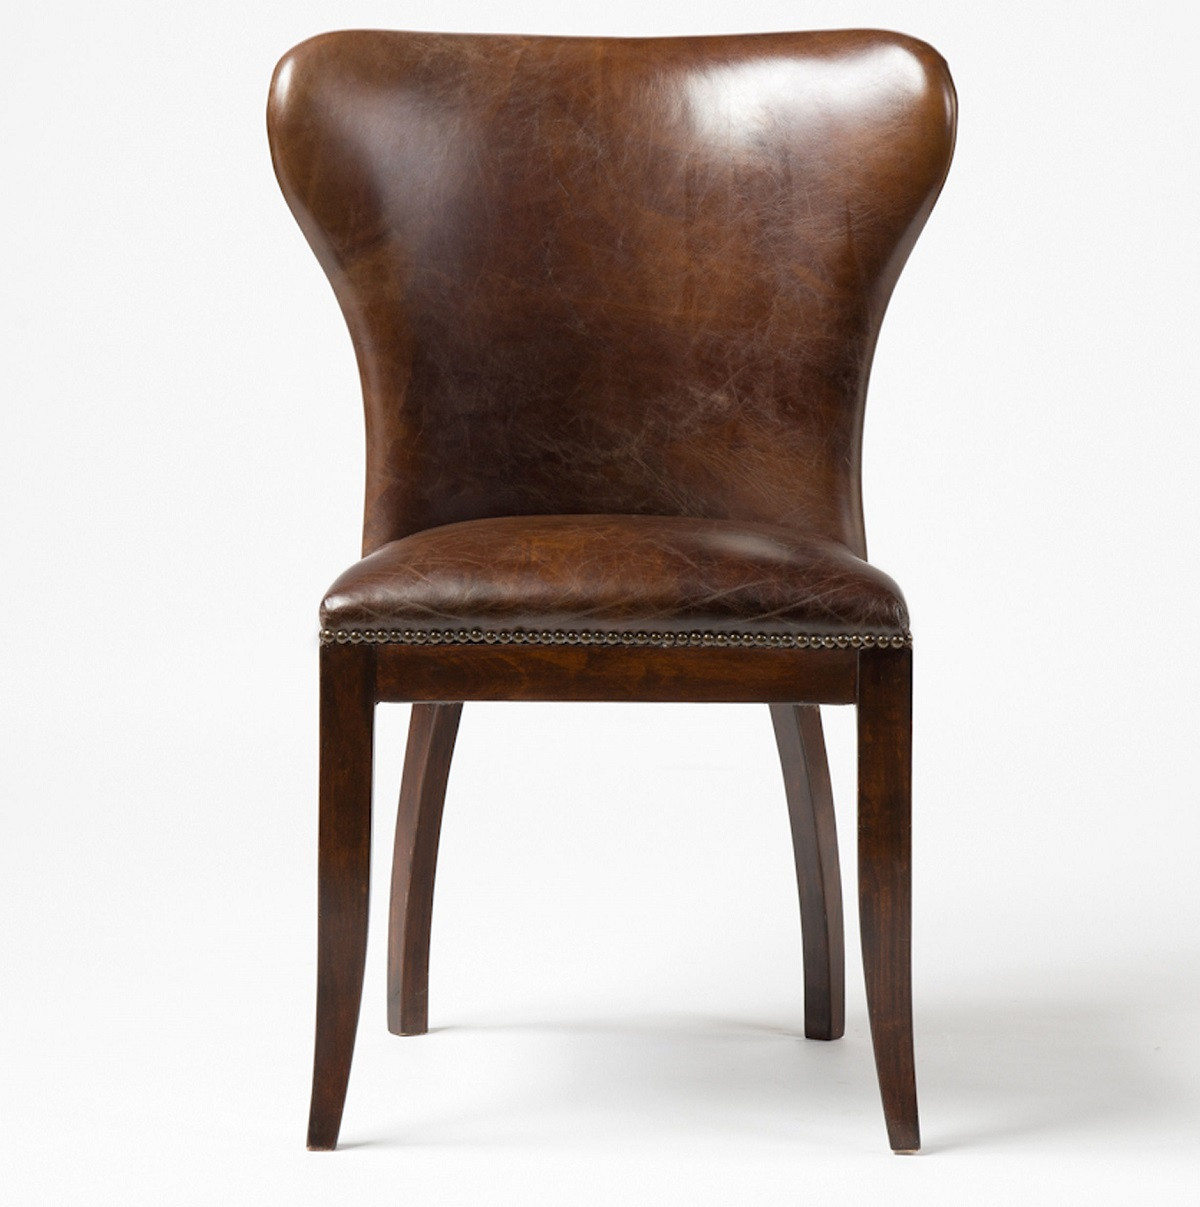 Wing back chair vintage -  Wingback Dining Room Chairs Richmond Brown Leather Host And Hostess Dining Chairs